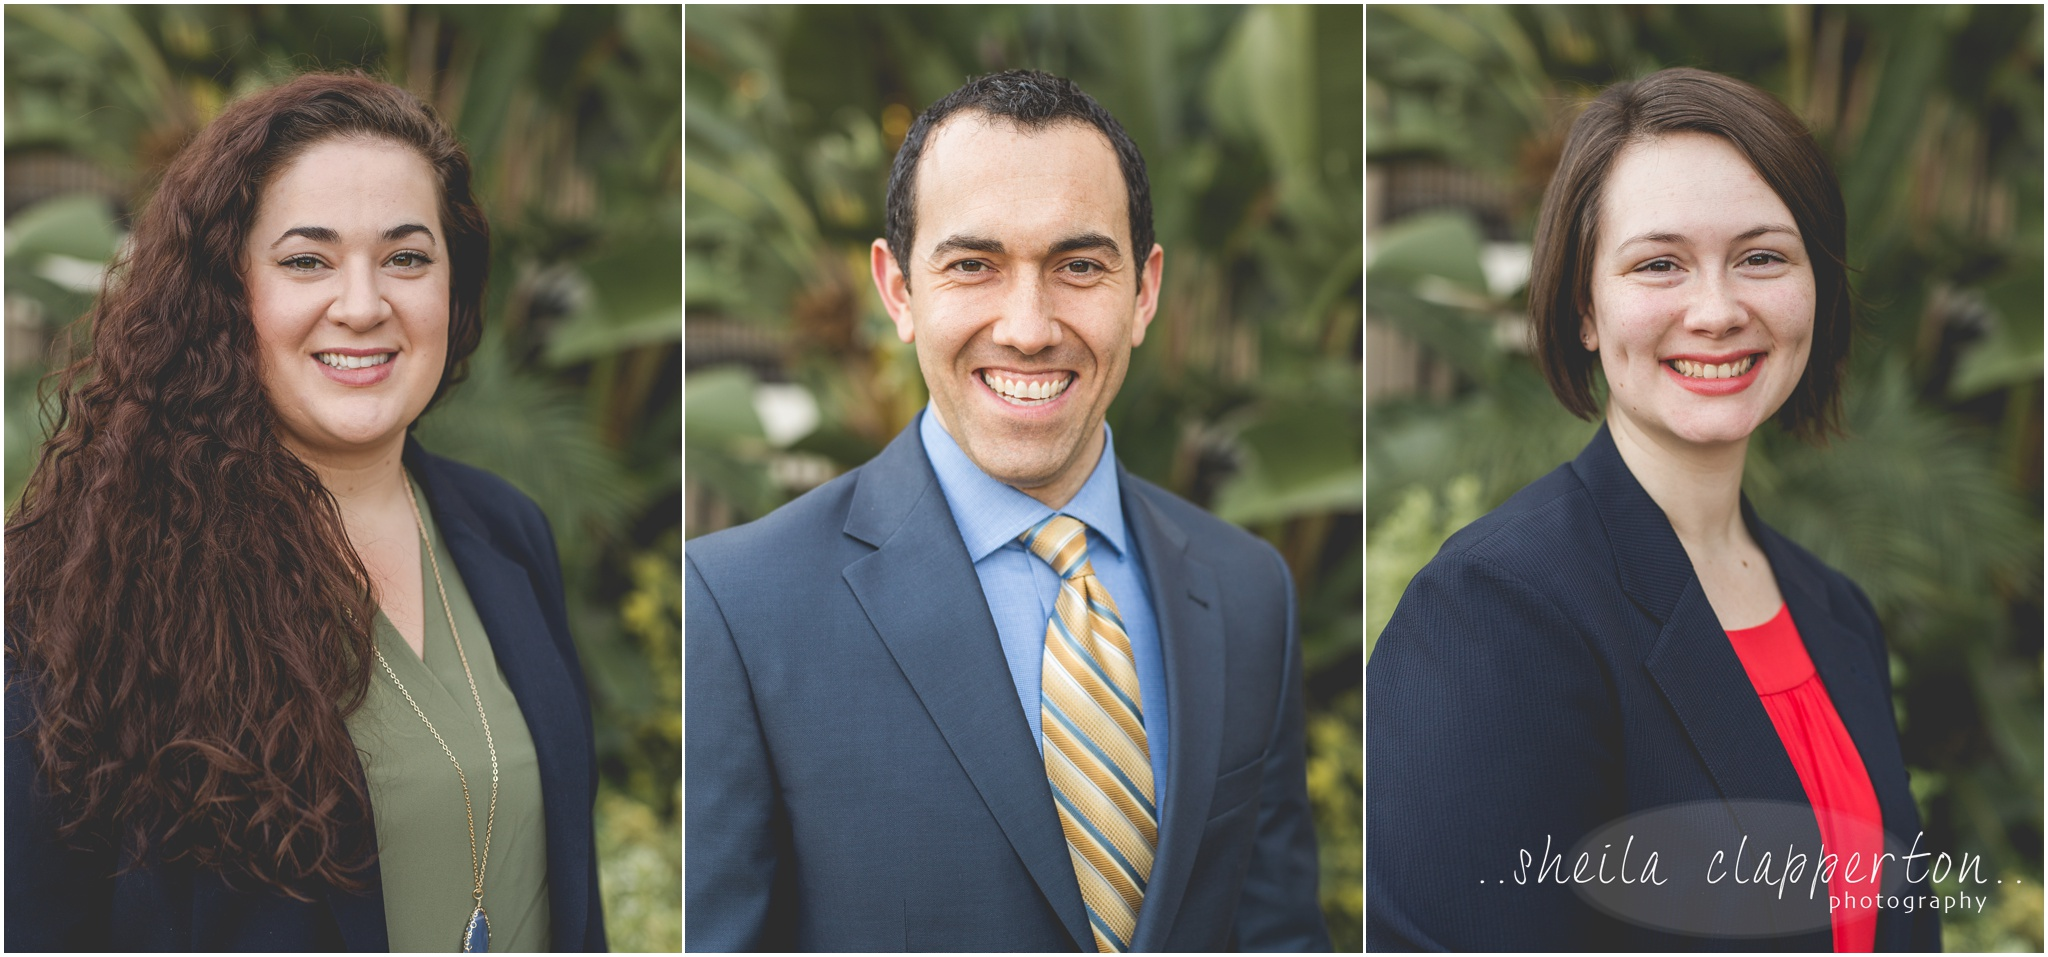 san diego linkedin headshot photographer